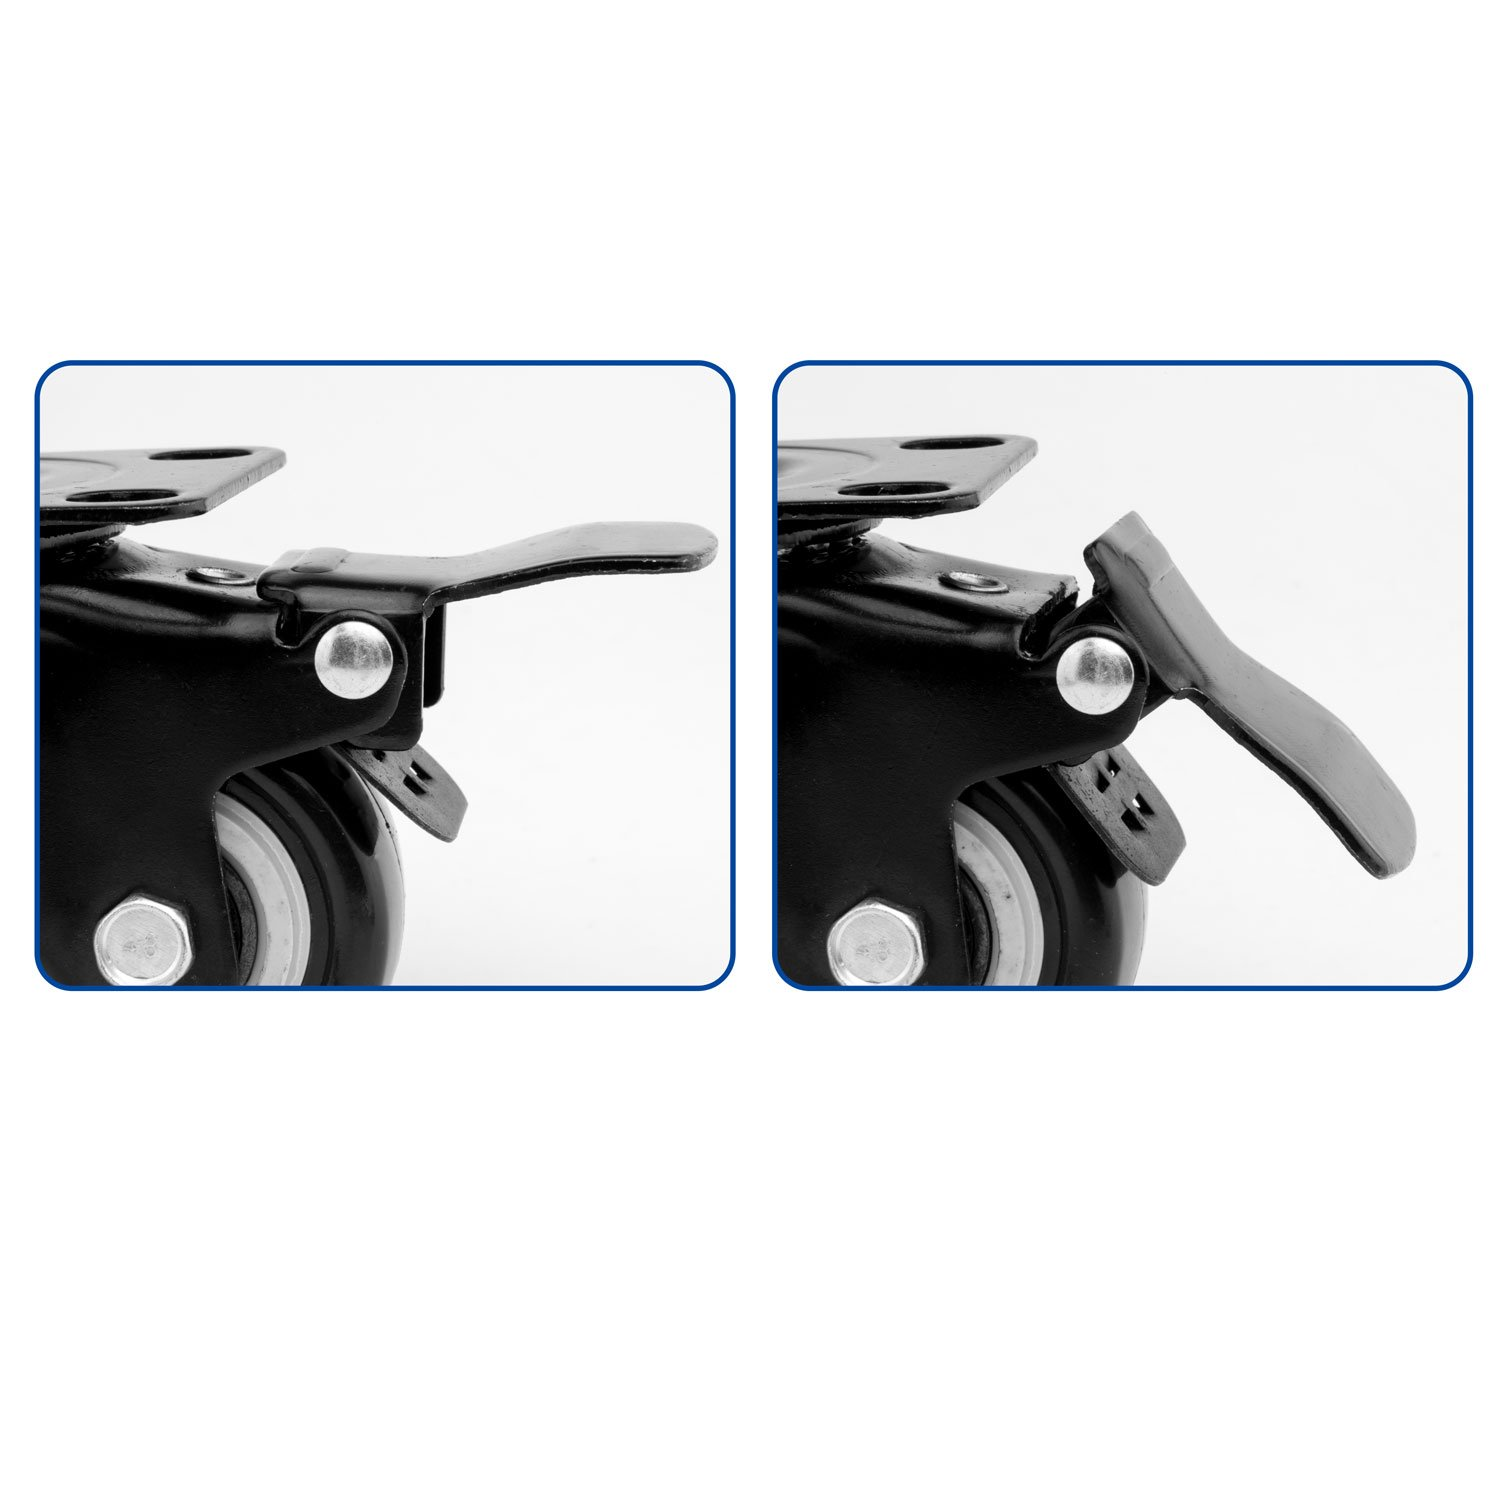 ULIFESTAR 4 PCS 1.5 inch Heavy Duty Caster Wheels Polyurethane PU Rubber Swivel Casters with Top Plate & Strong Bearing Total 400lb Quite Mute Non-Marking Locking Stem Casters Black (1.5'') by Ulifestar (Image #5)